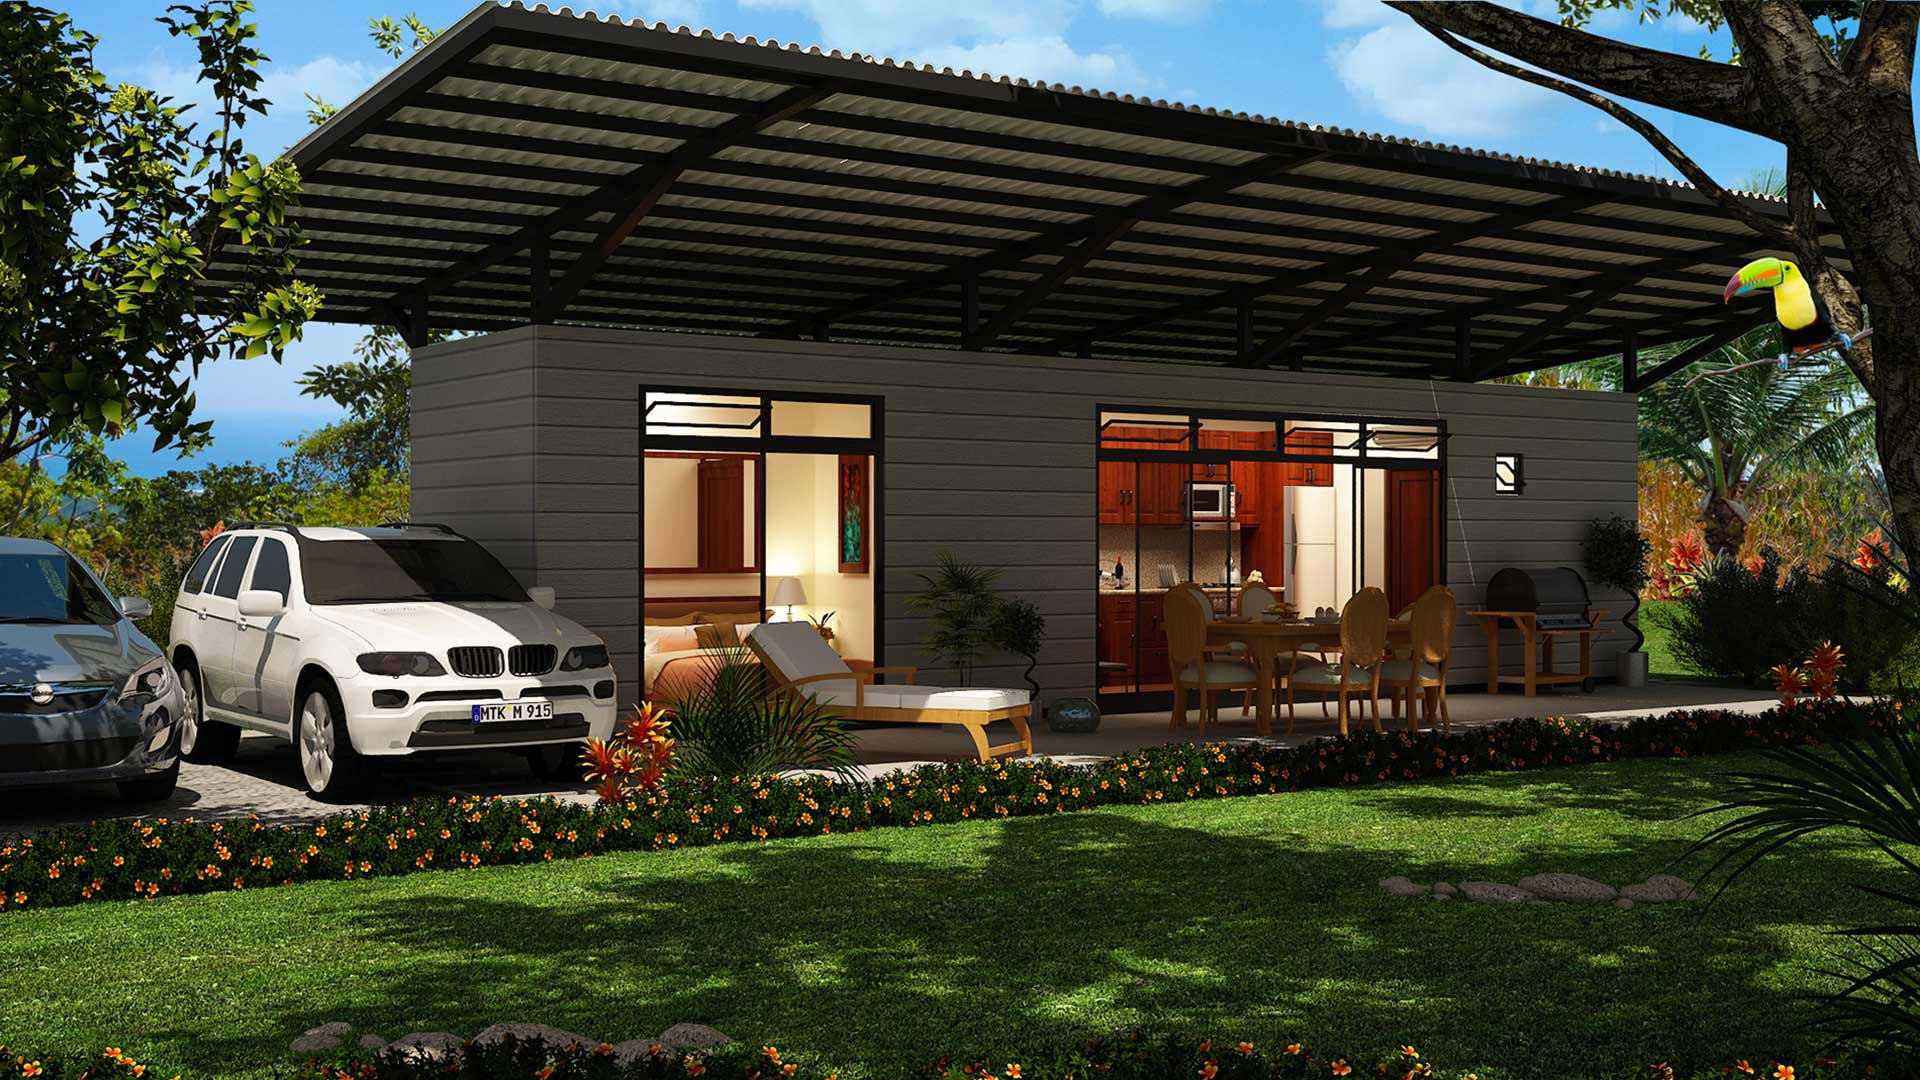 Costa rica container homes in playa hermosa homes for sale for Costa rica house plans